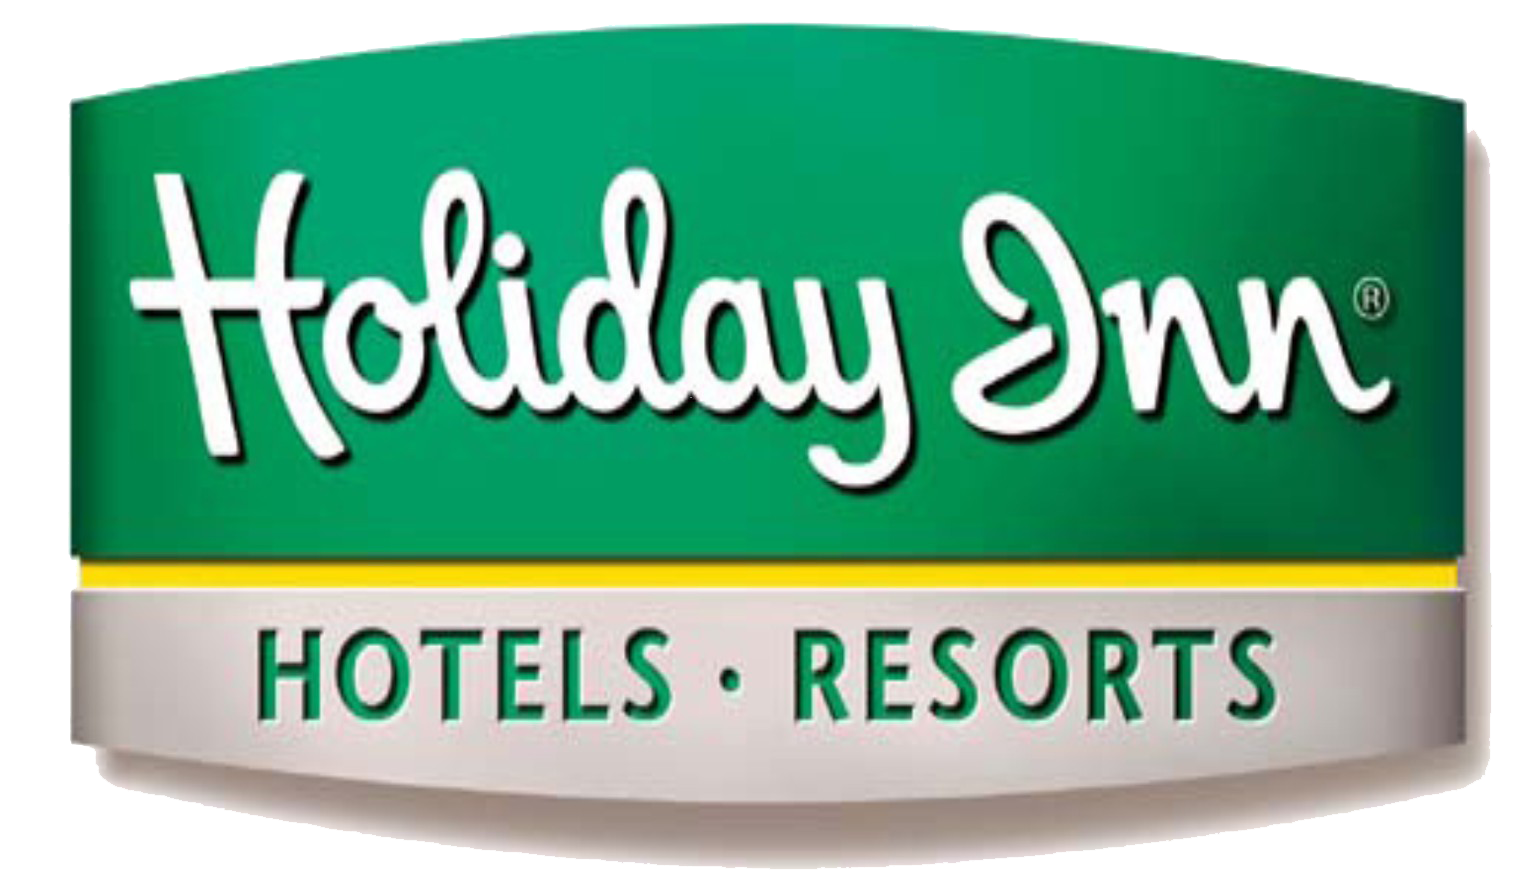 holiday inn hotels resorts png logo #6549